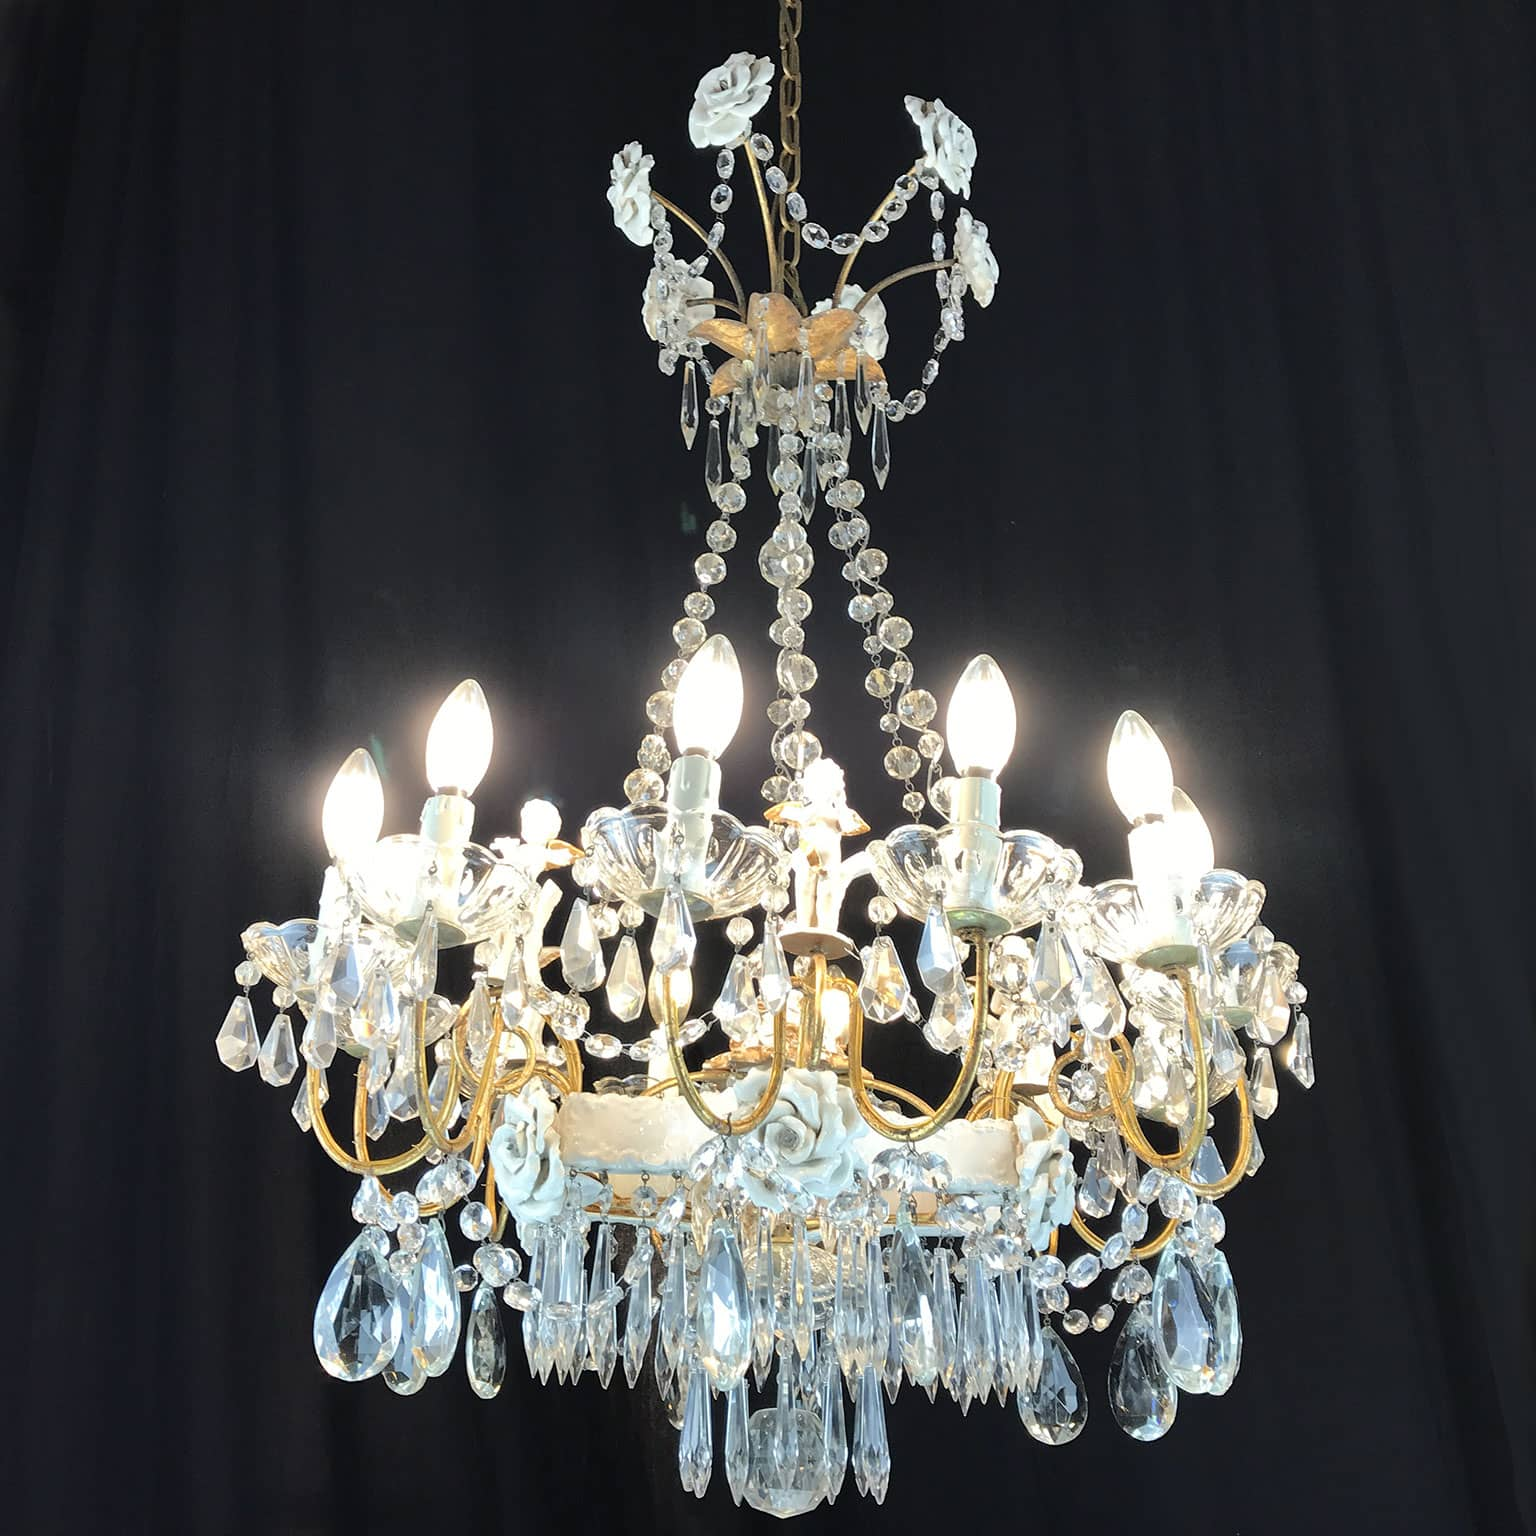 20th Century Italian Chandelier With Capodimonte Porcelain Putti And Rose Petals